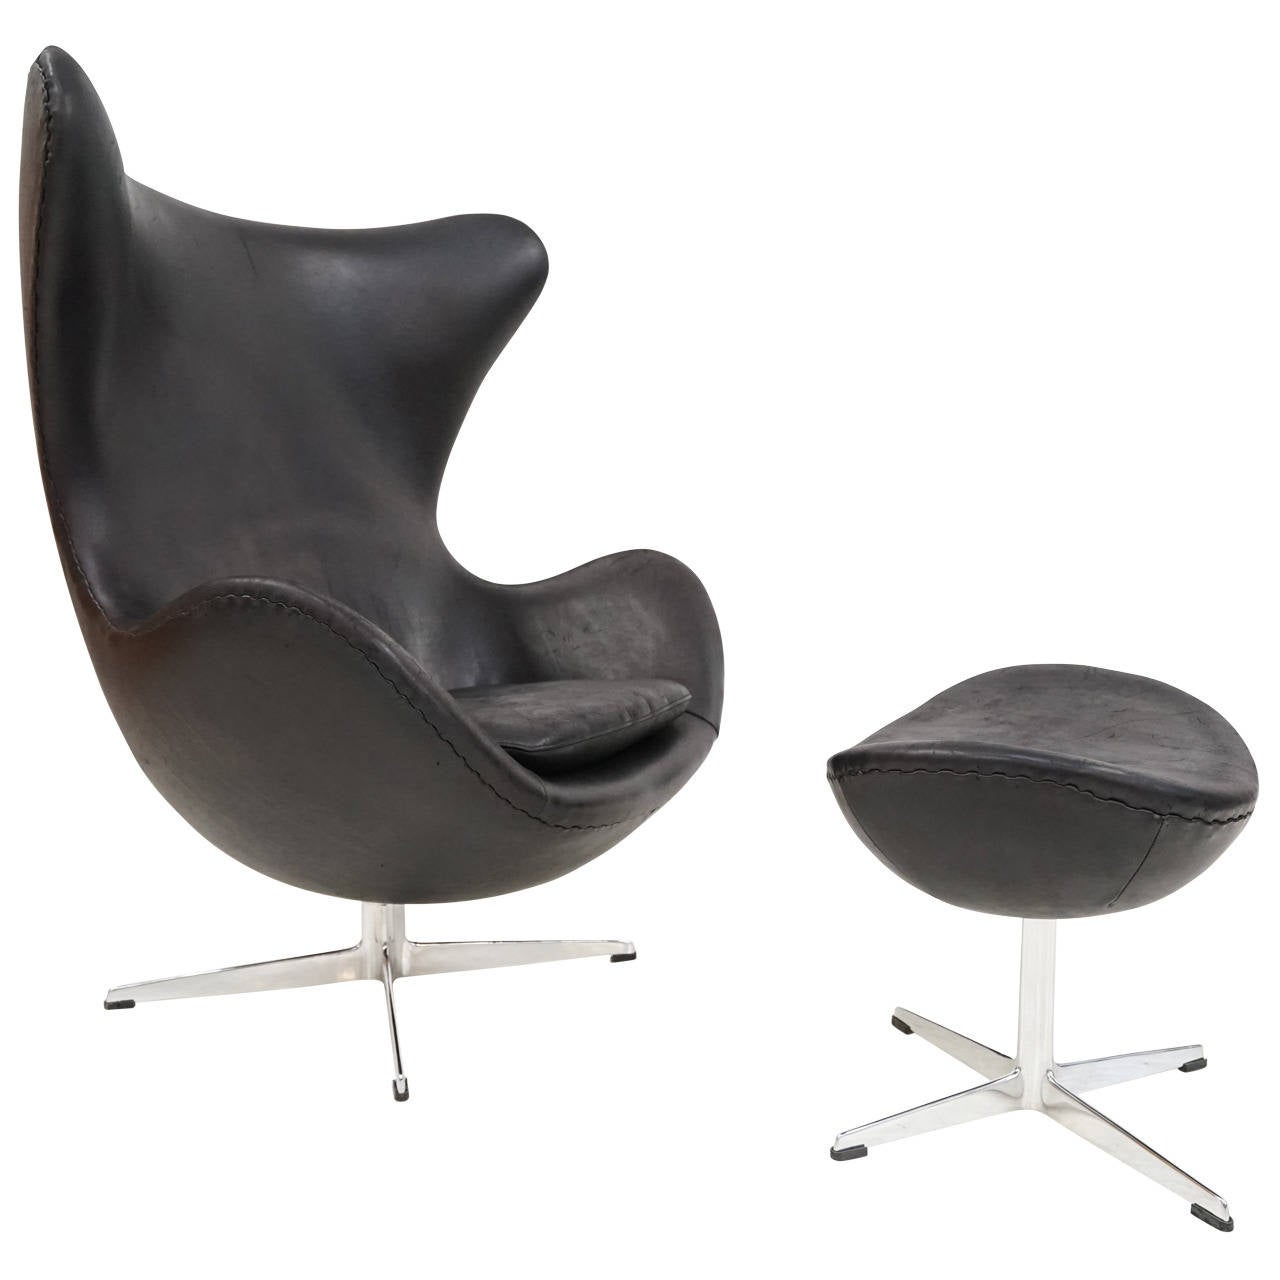 early arne jacobsen leather egg chair with ottoman by fritz hansen at 1stdibs. Black Bedroom Furniture Sets. Home Design Ideas